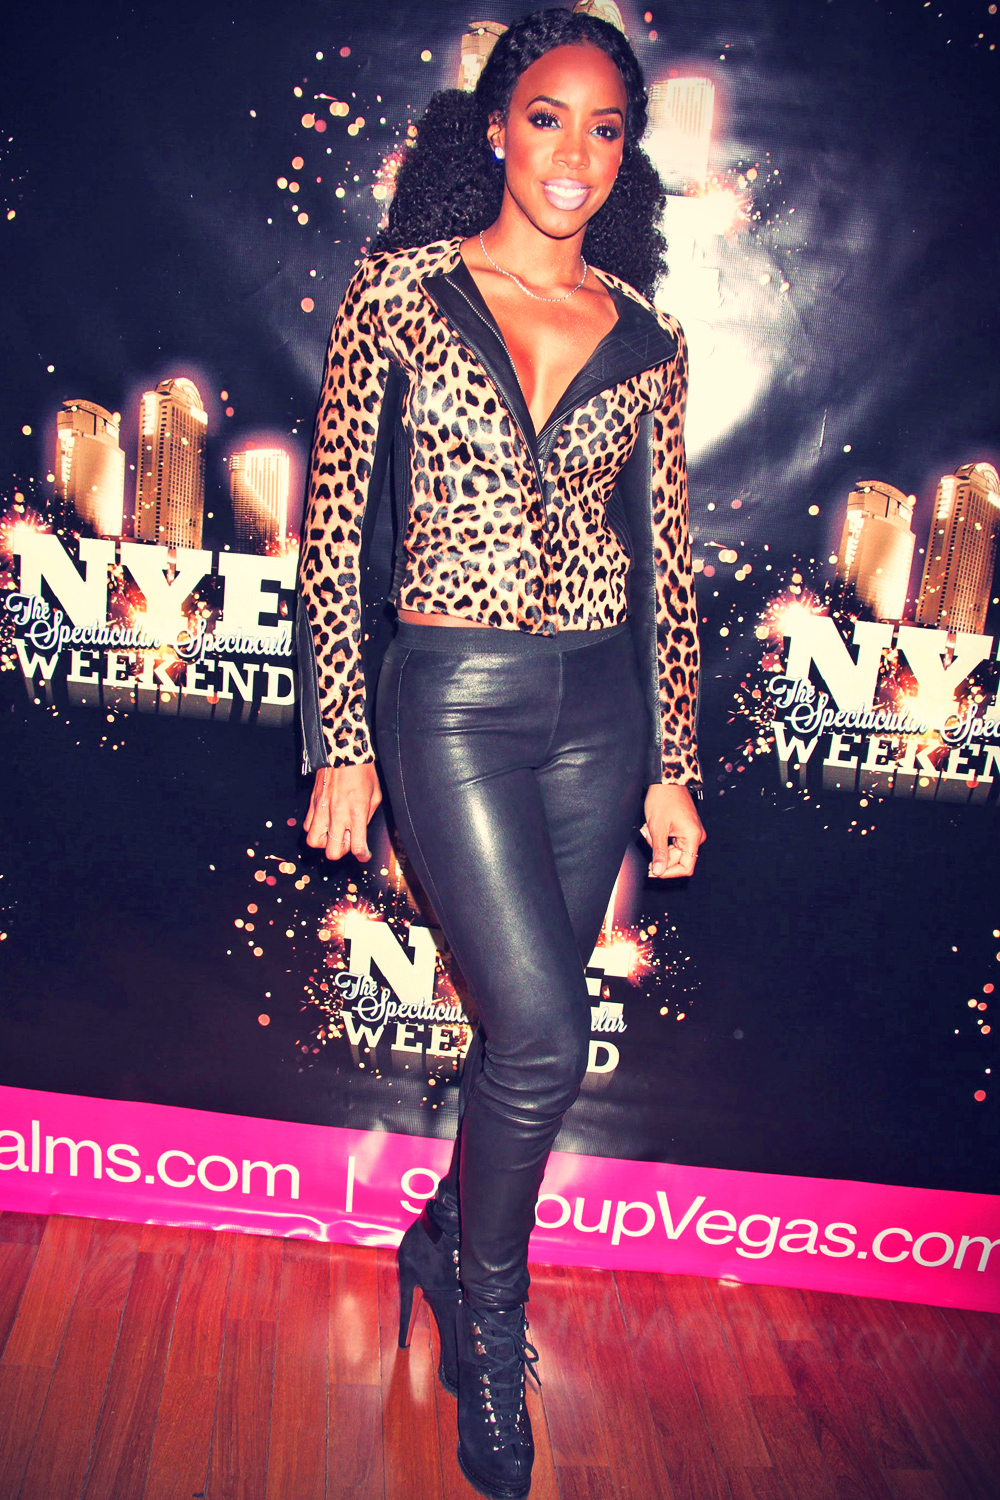 Kelly Rowland attends New Year's eve weekend